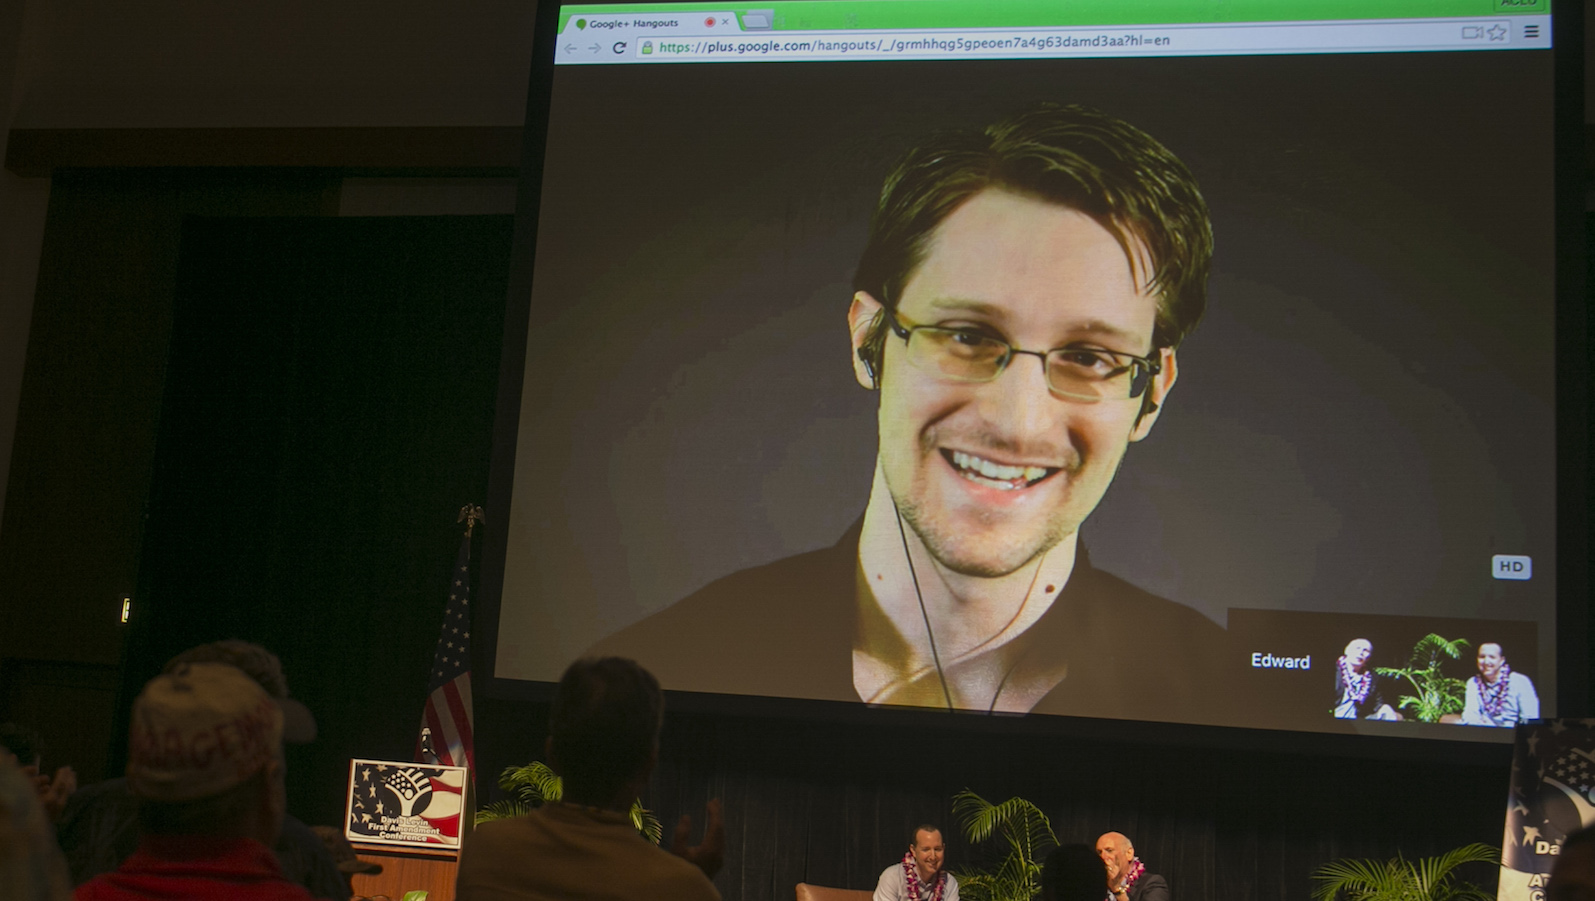 National Security Agency leaker Edward Snowden appears on a live video feed broadcast from Moscow at an event sponsored by the ACLU Hawaii in Honolulu on Saturday, Feb. 14, 2015.